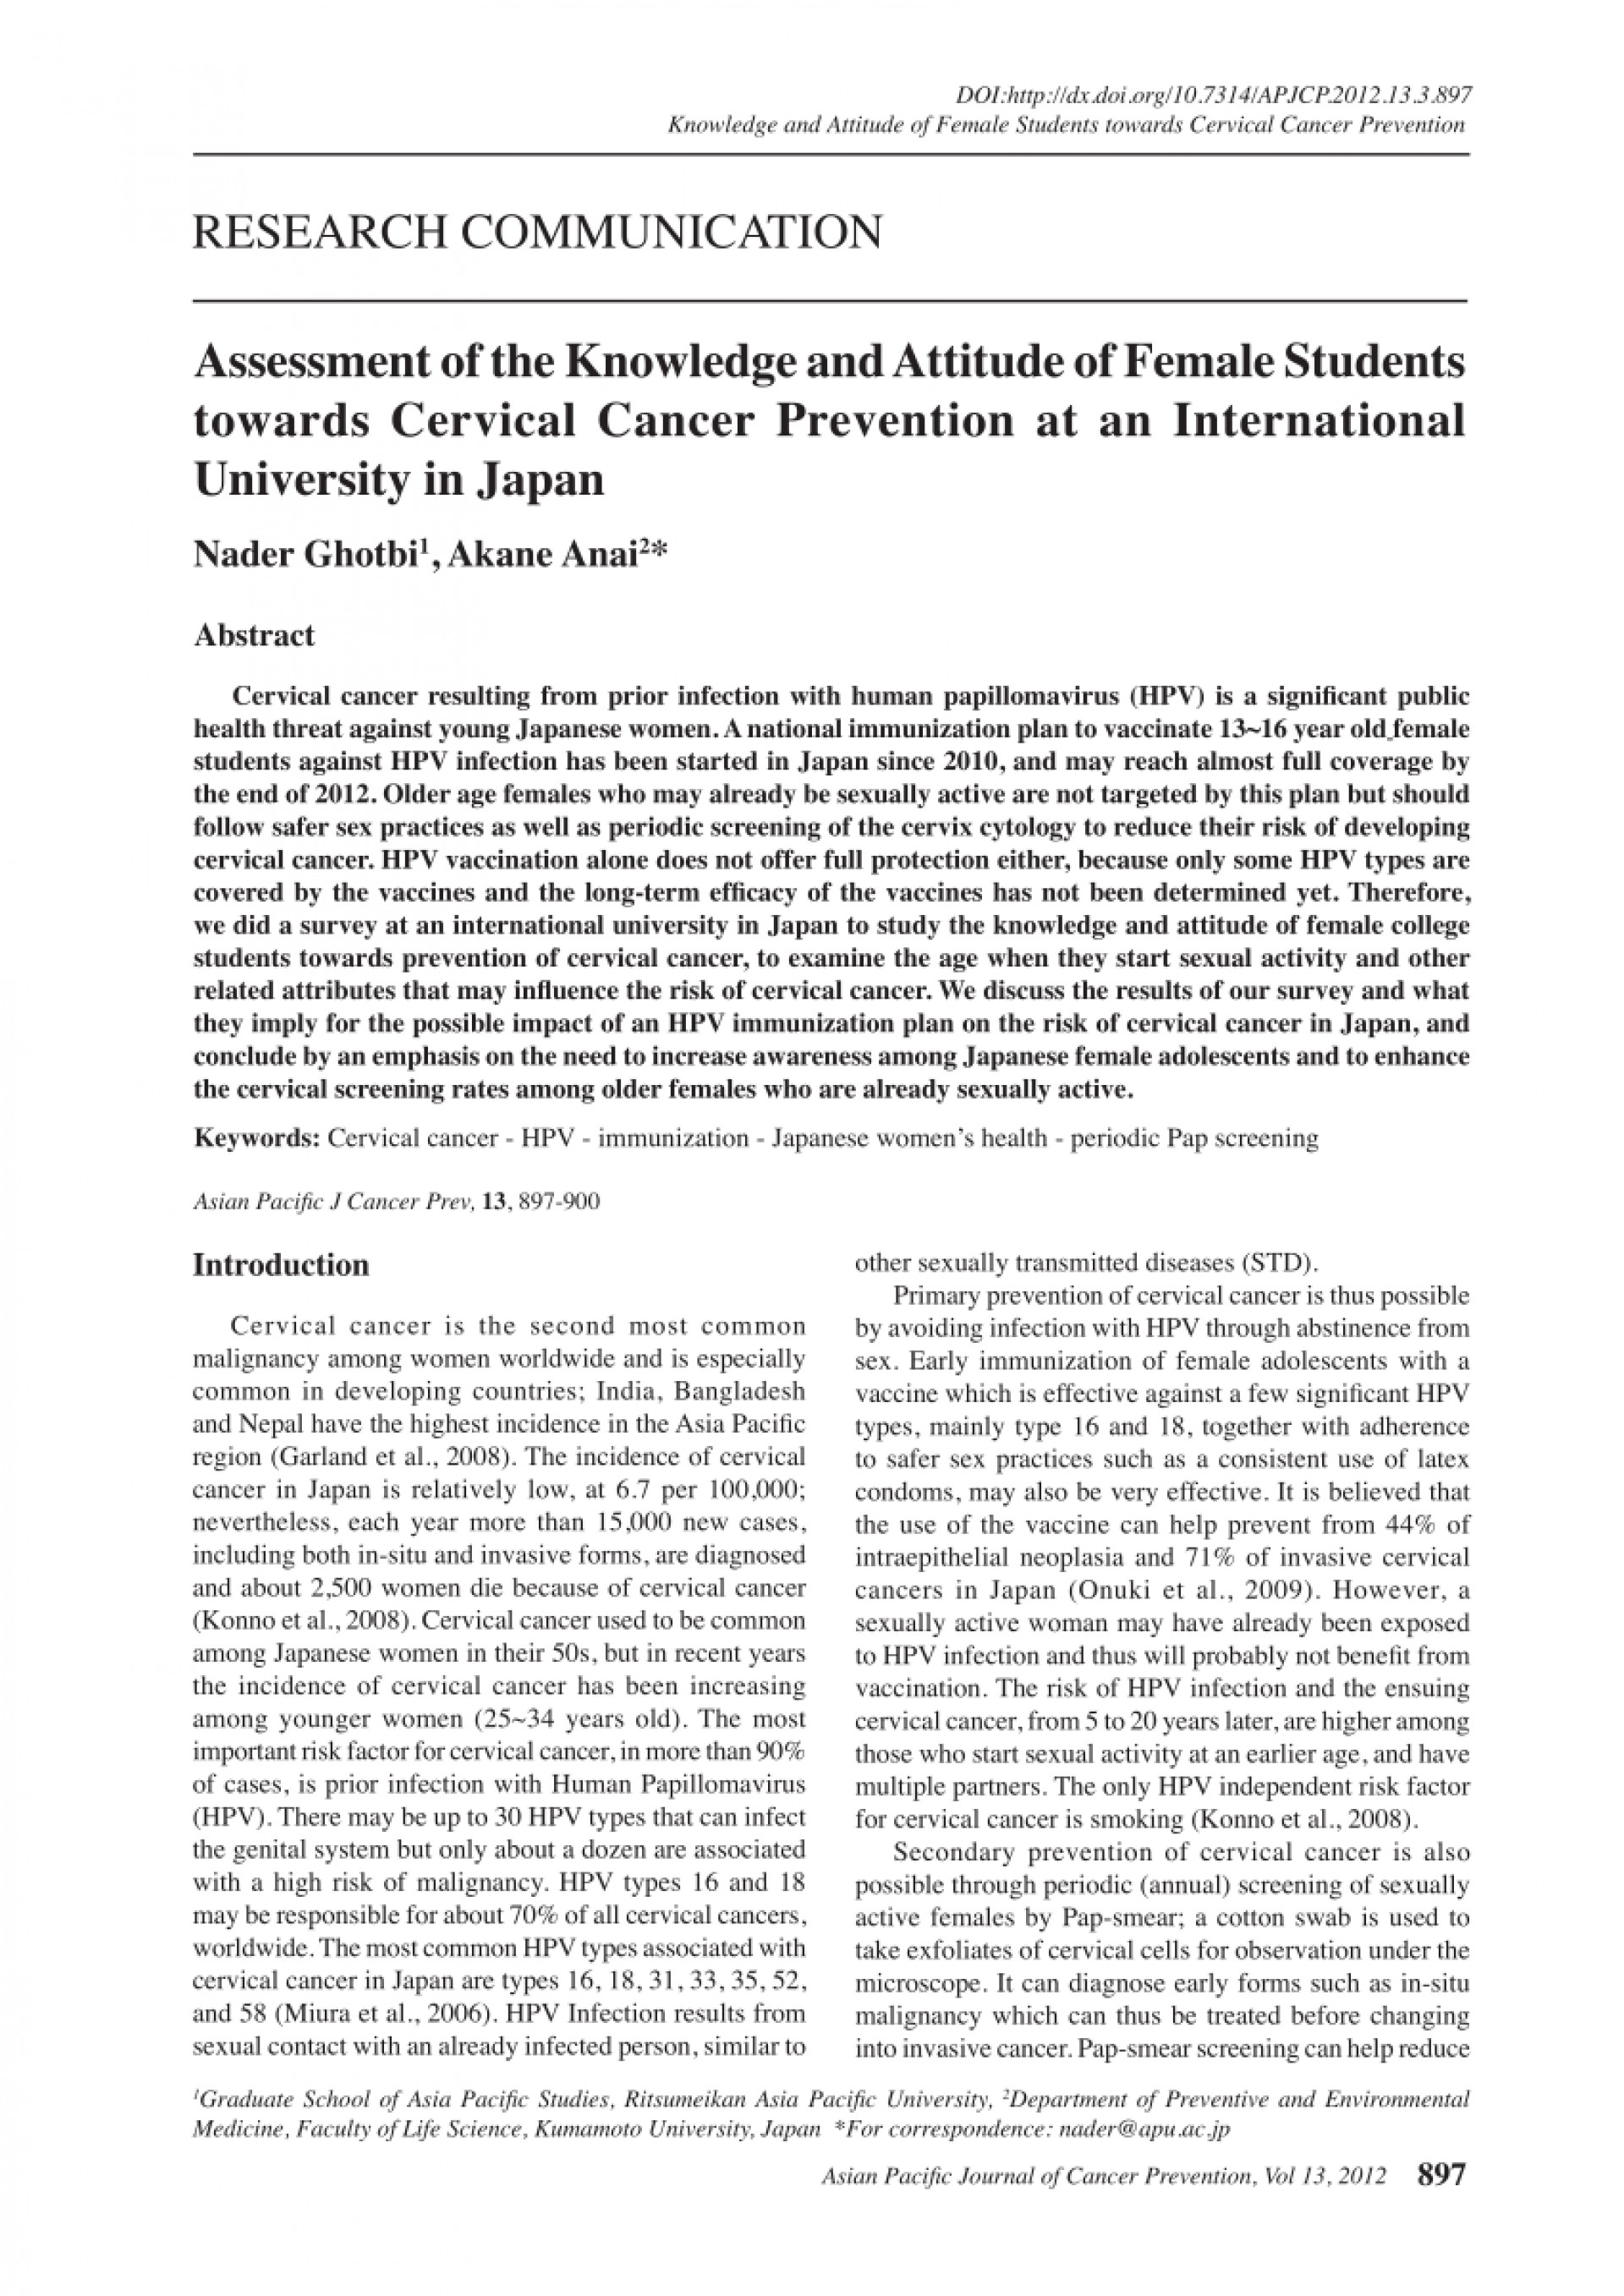 008 Cervical Cancer Research Papers Essay Top Treatment Questions Short On In Hindi Conclusion 1920